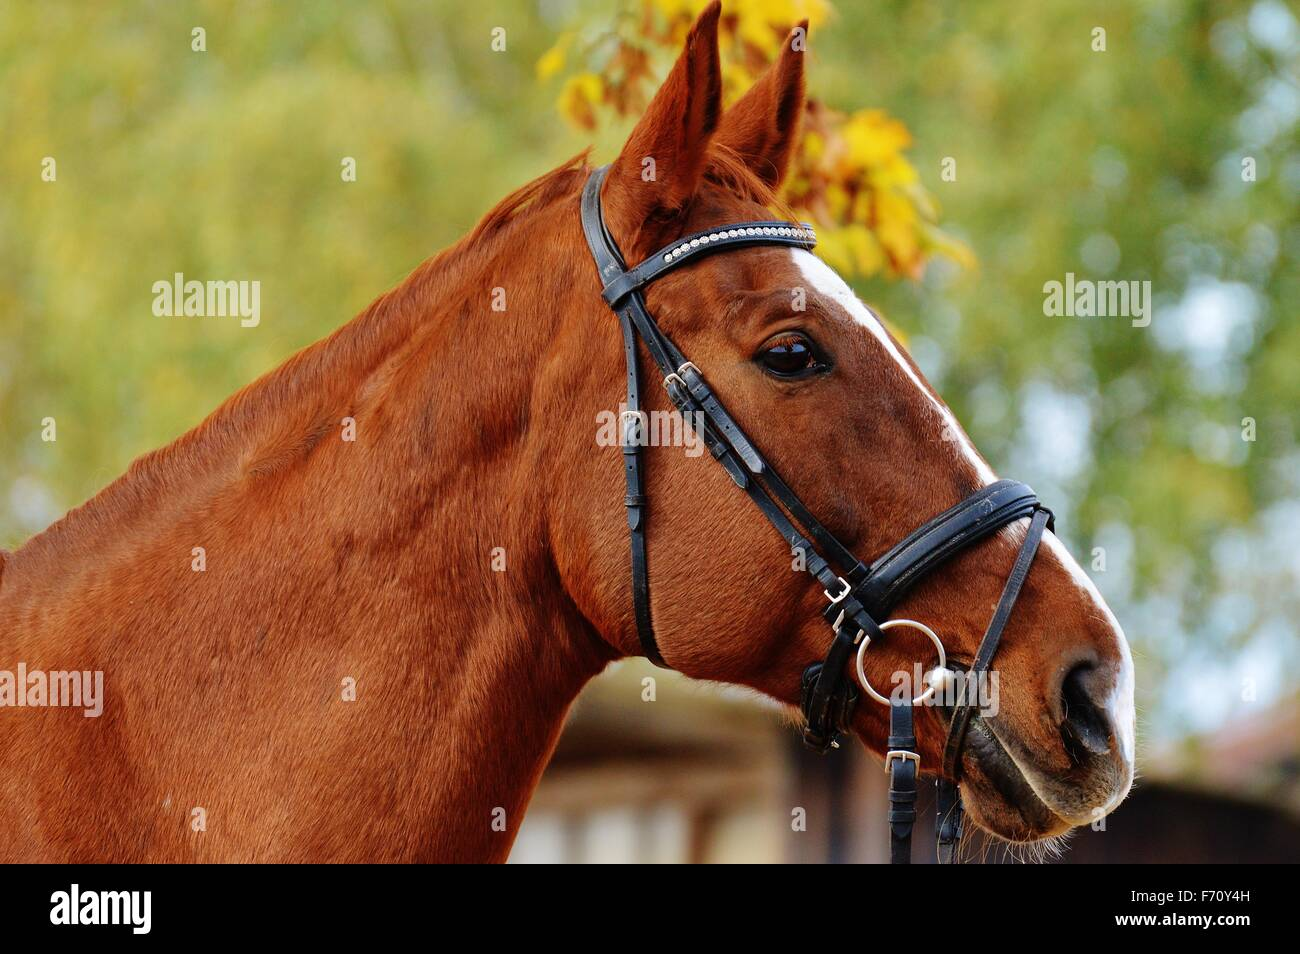 Close Up Side View Of A Brown Horse With Head Gear Stock Photo Alamy